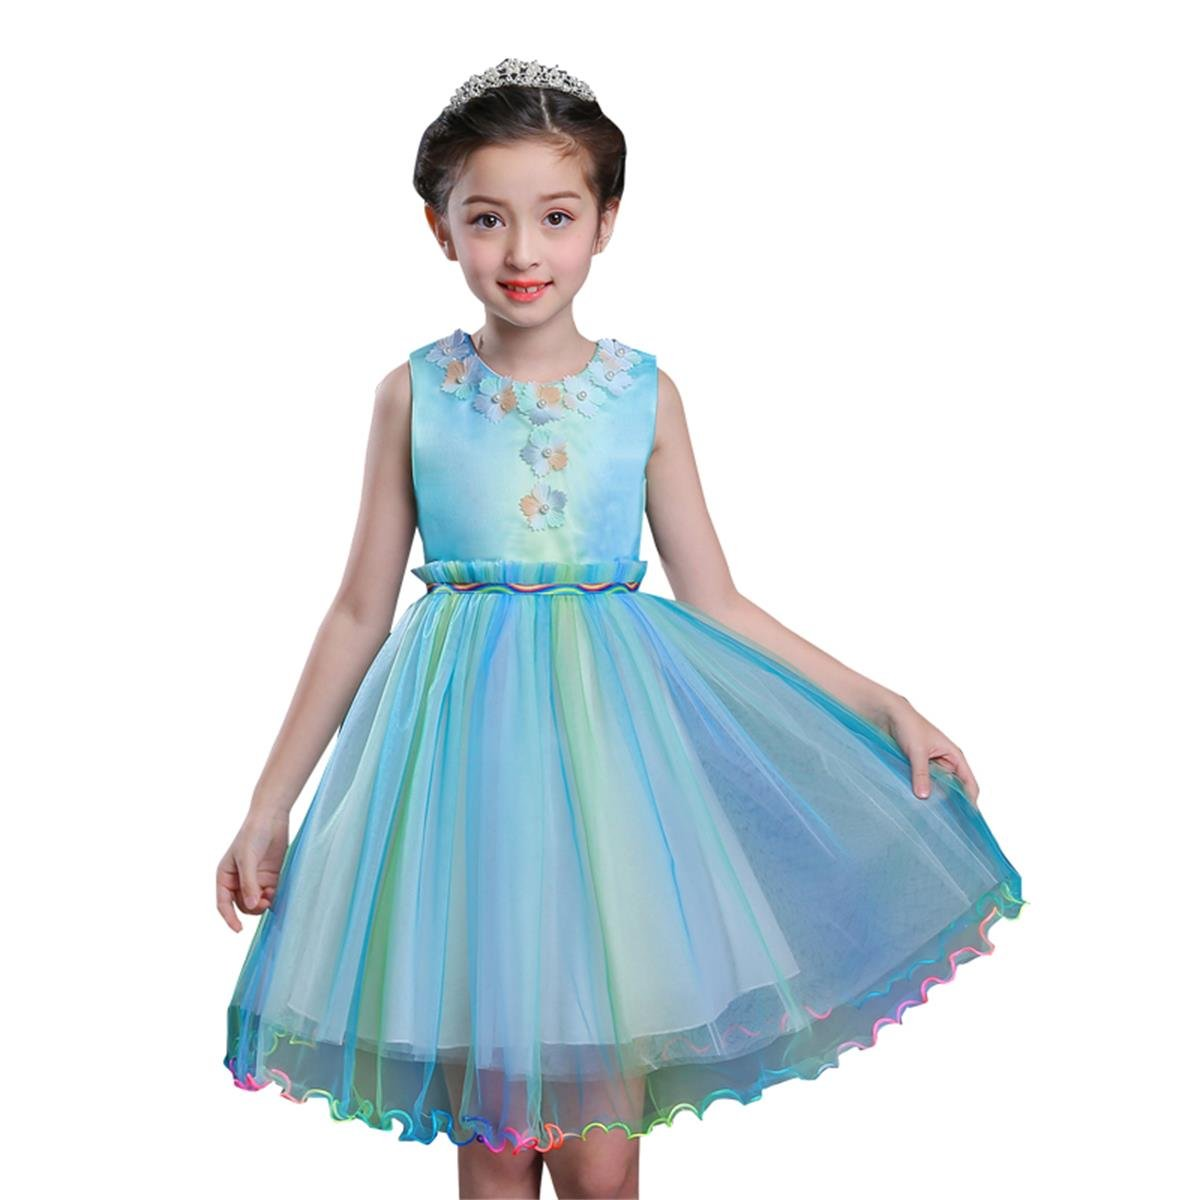 e9cebbbb24 Cotton Polyester Lace Blending Princess Rainbow Dress . Soft and  Comfortable Lining Can Protect the Skin of Little Baby Girls.